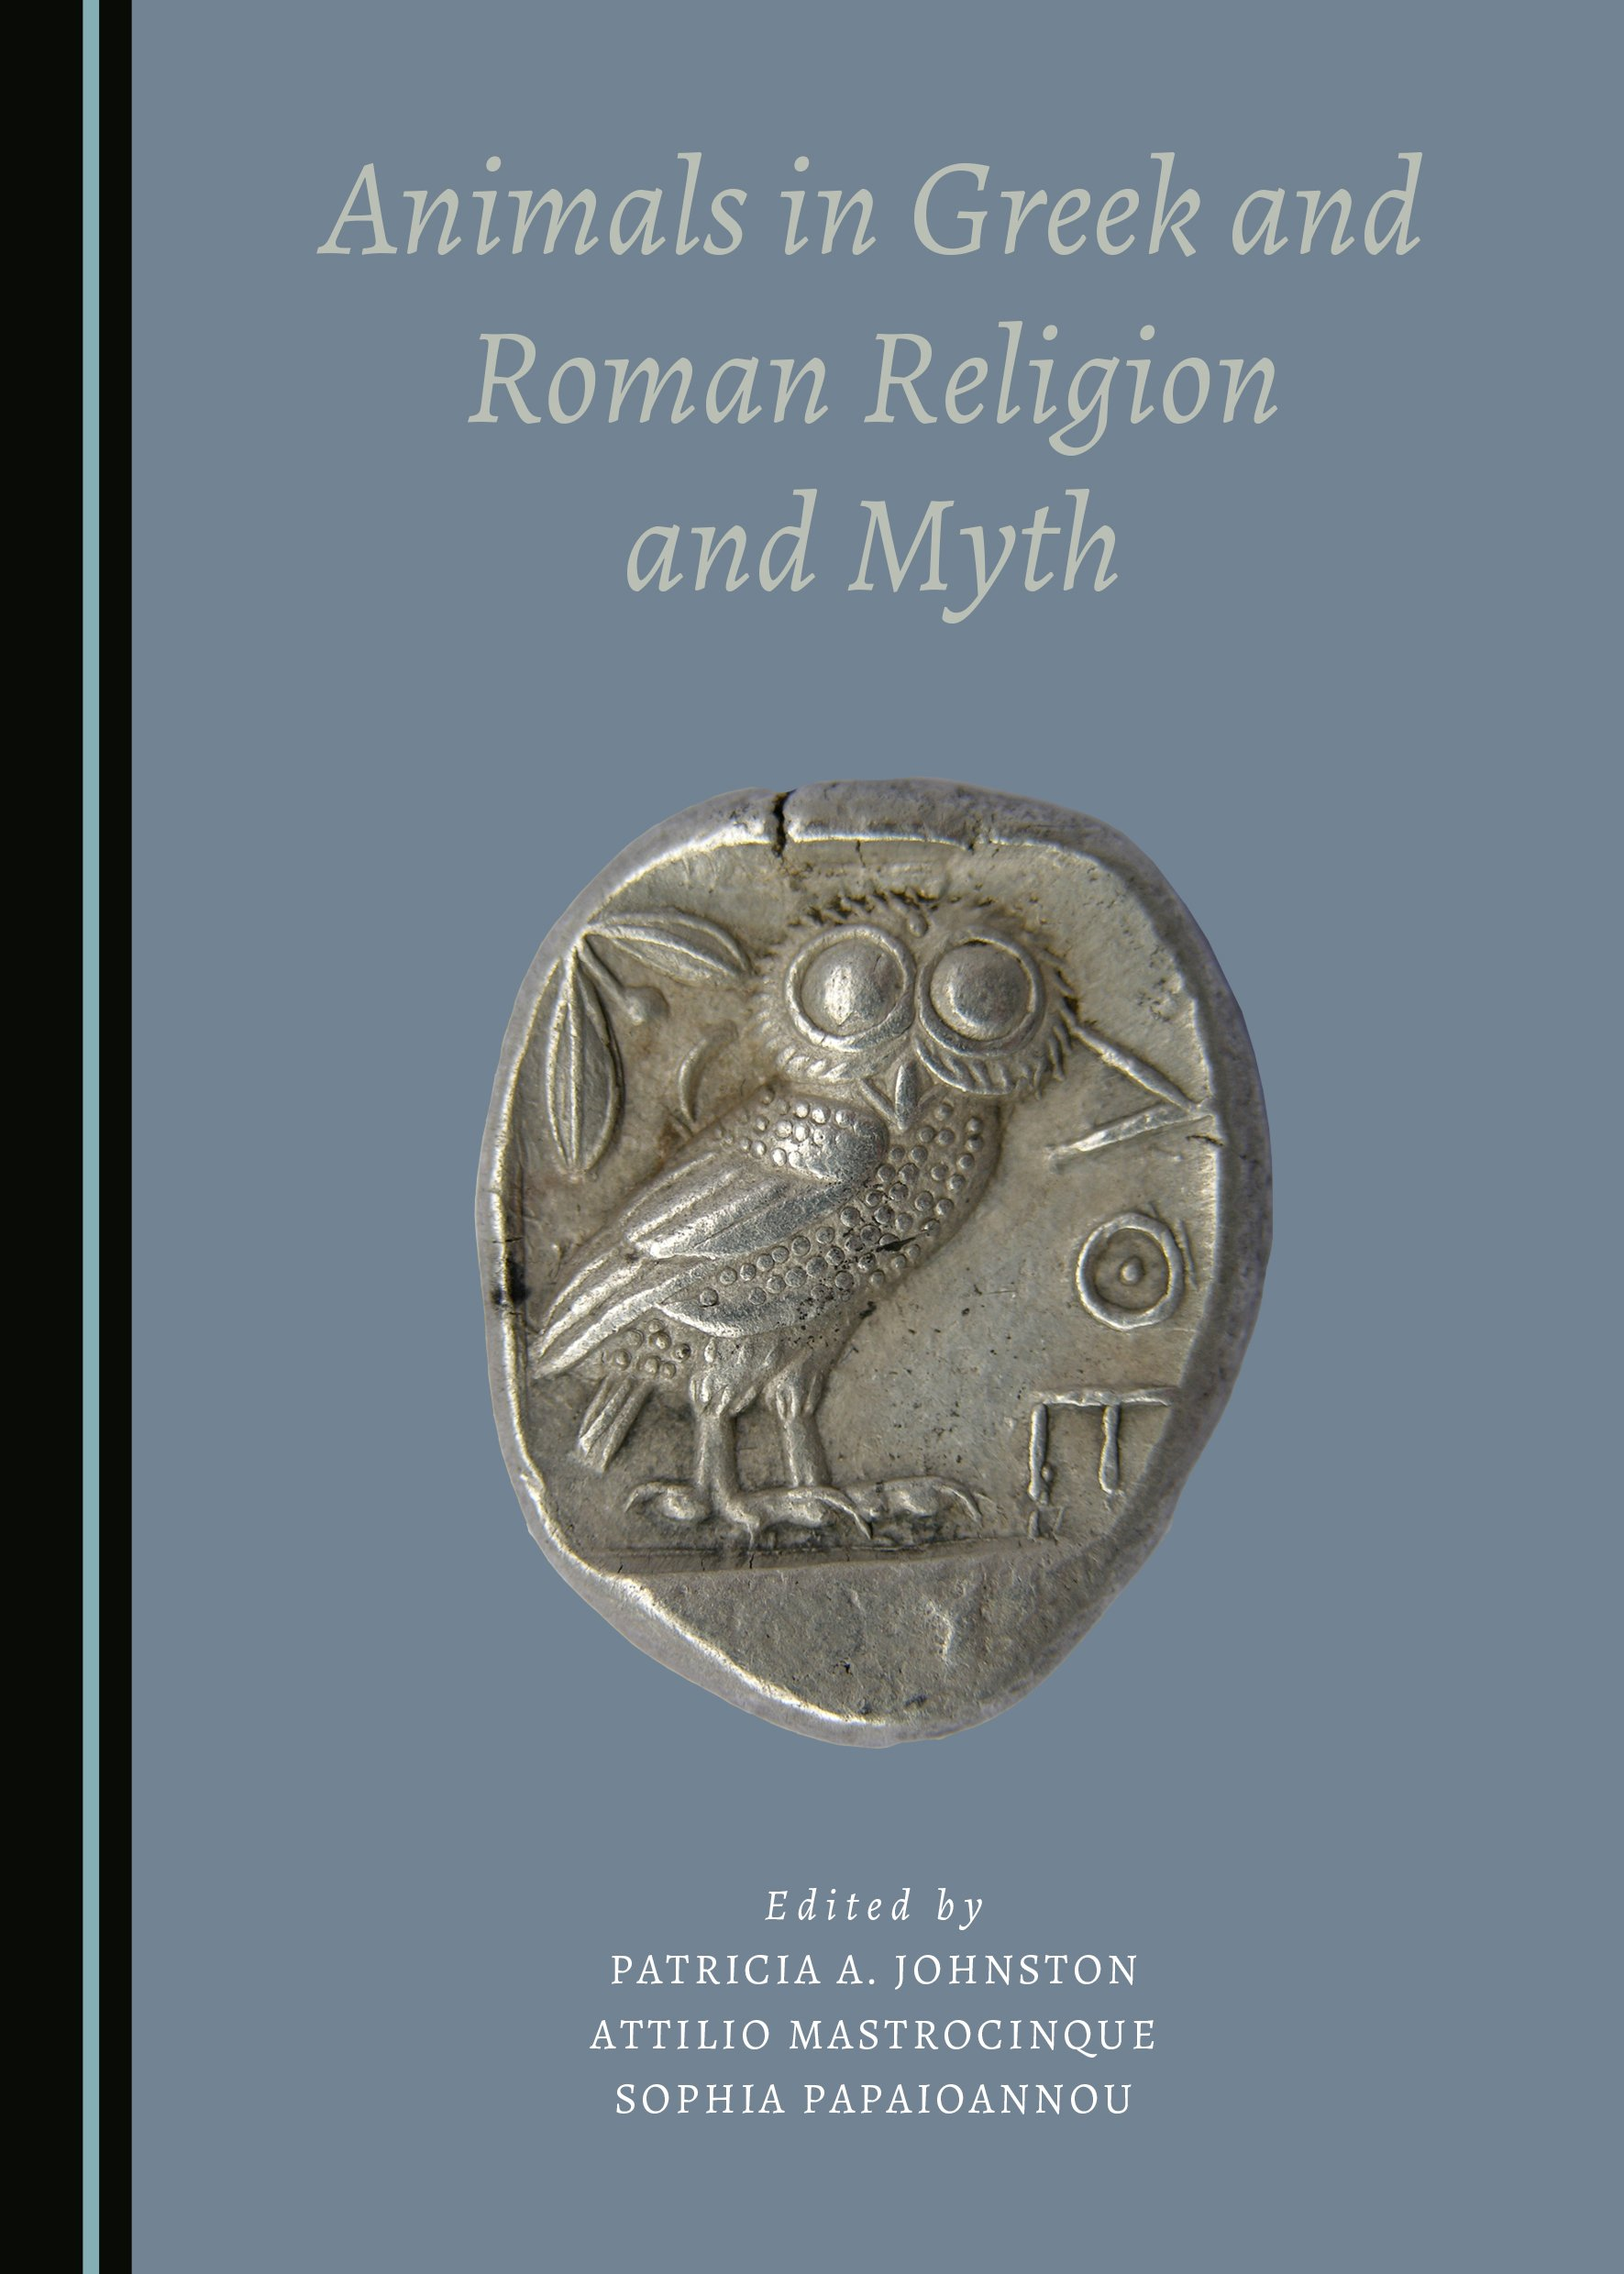 Animals in Greek and Roman Religion and Myth